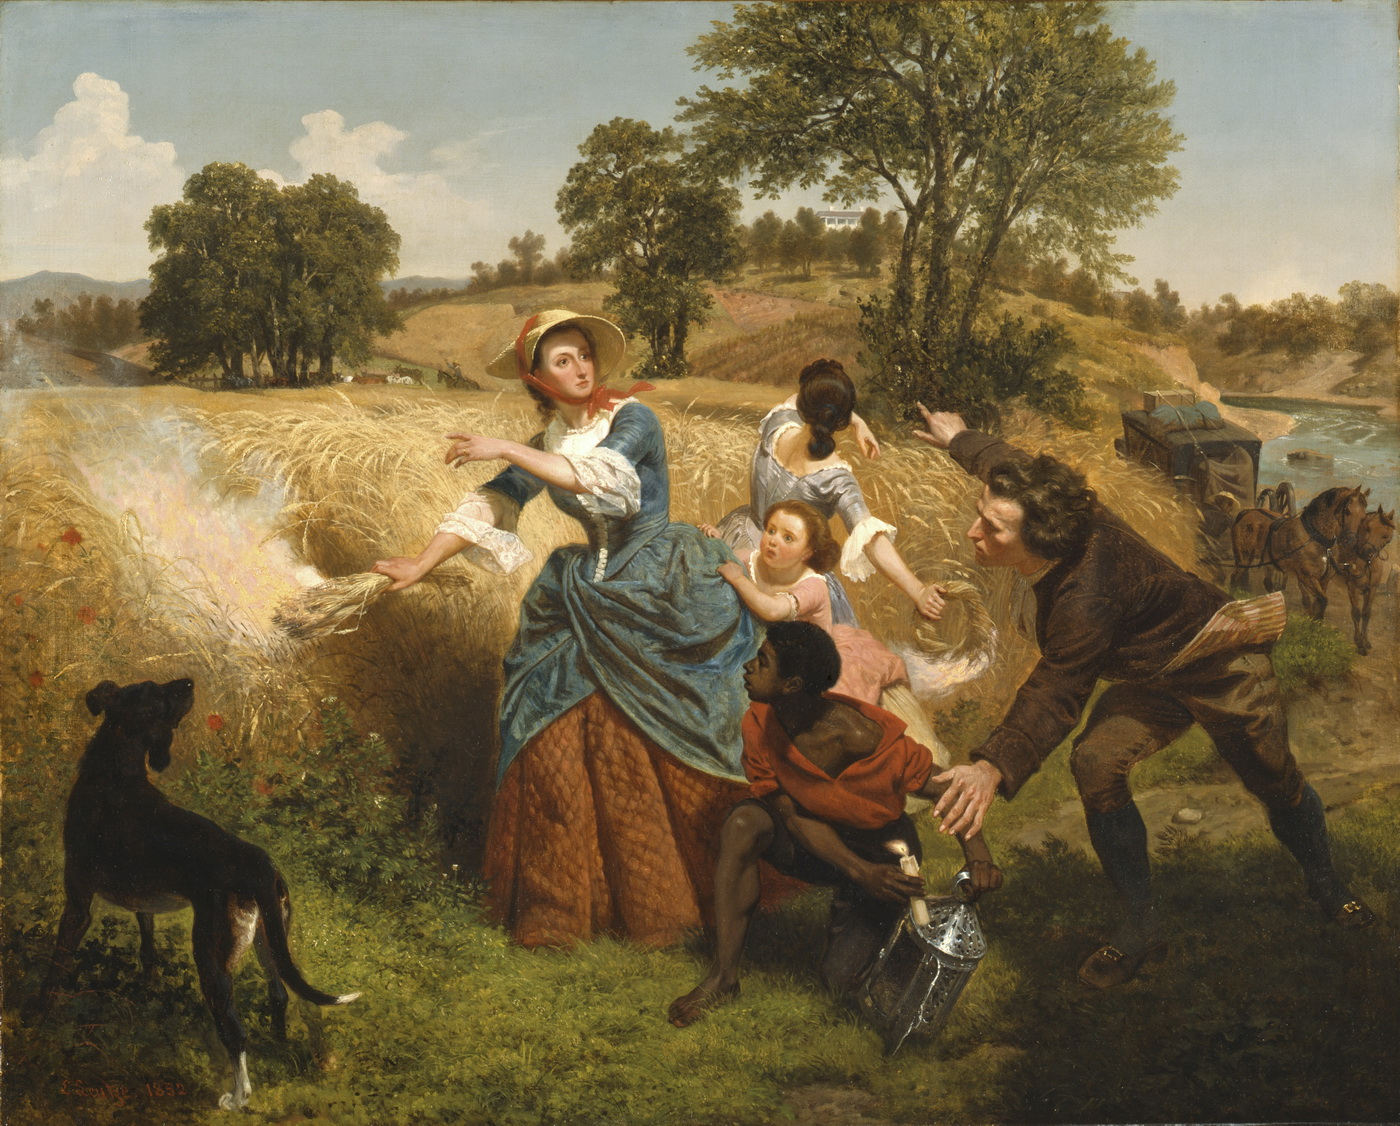 Емануель Лойце 1816-1868. Mrs. Schuyler Burning Her Wheat Fields on the Approach of the British-1400